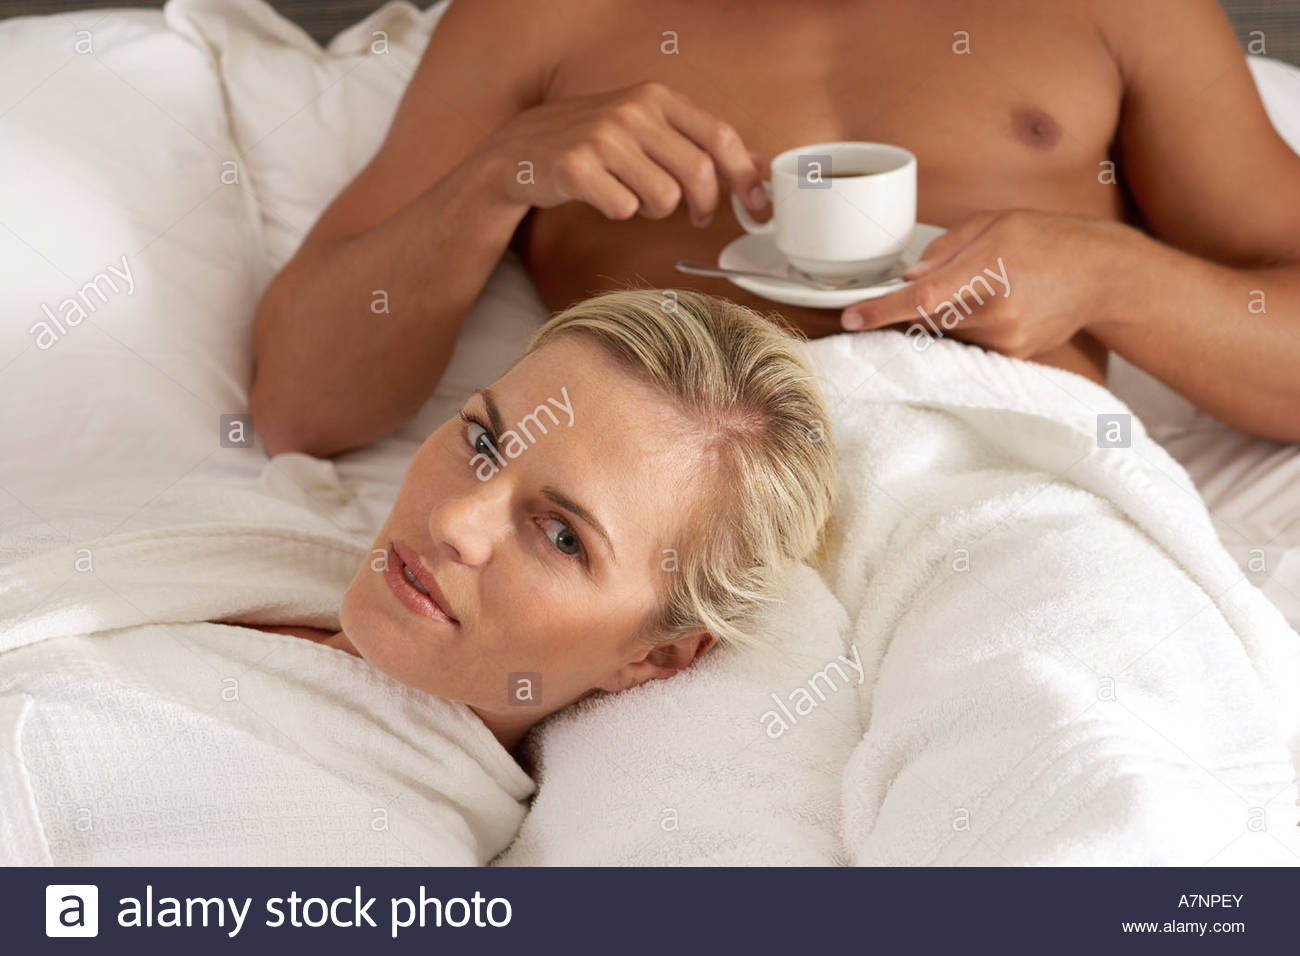 Couple relaxing on bed man drinking cup of coffee woman resting head in man s lap portrait - Stock Image